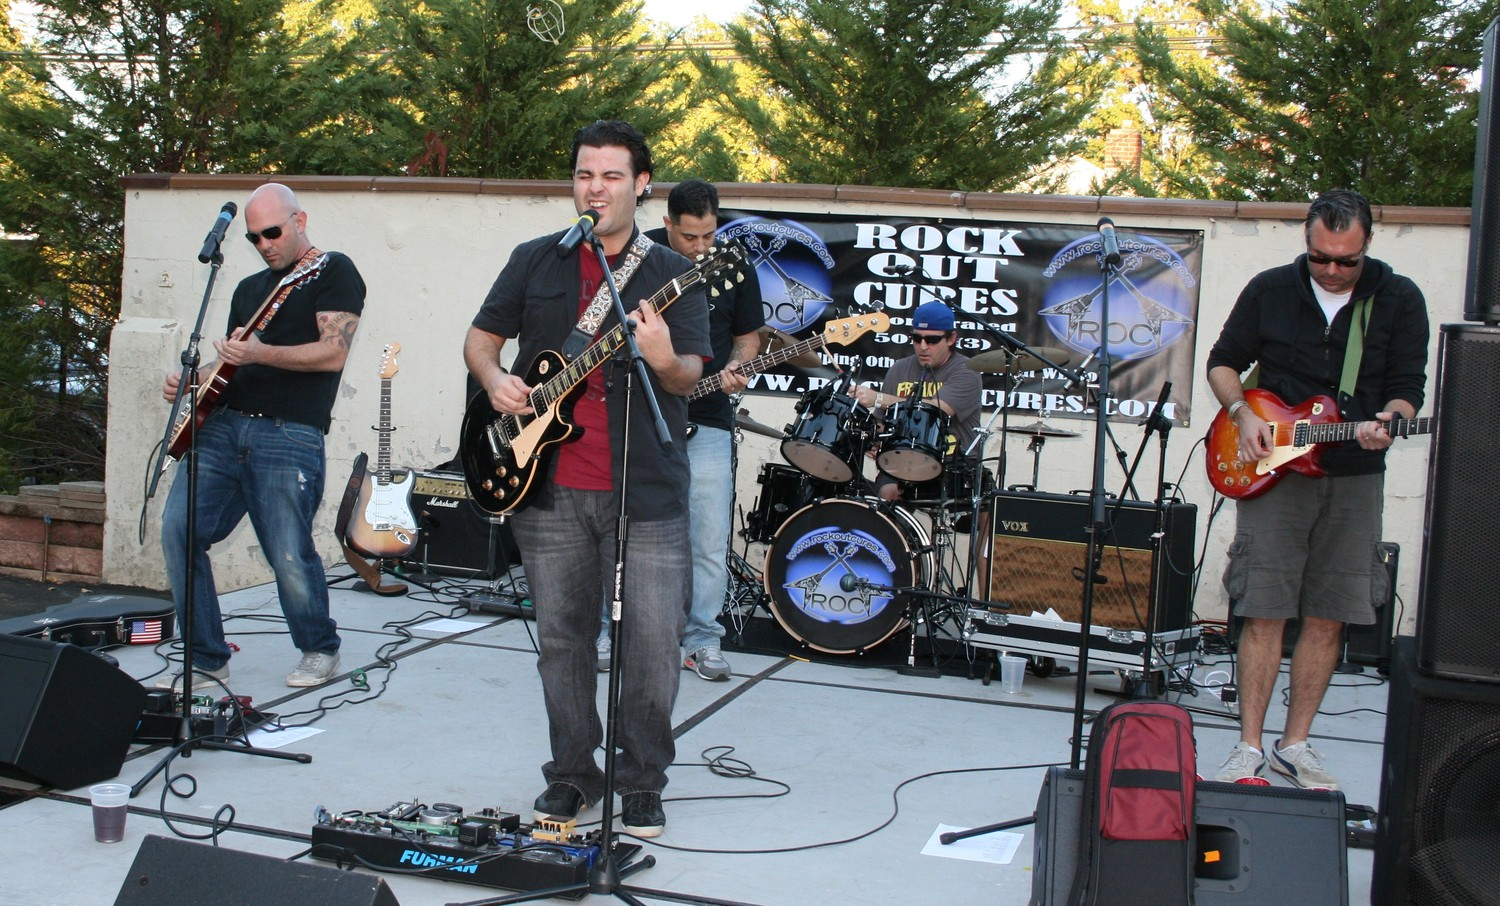 The Modern Justice cover band took the stage at the sixth Rock Out Cures benefit in 2013. This year's benefit will take place at Plattdeutsche Park Restaurant on Sept 22.